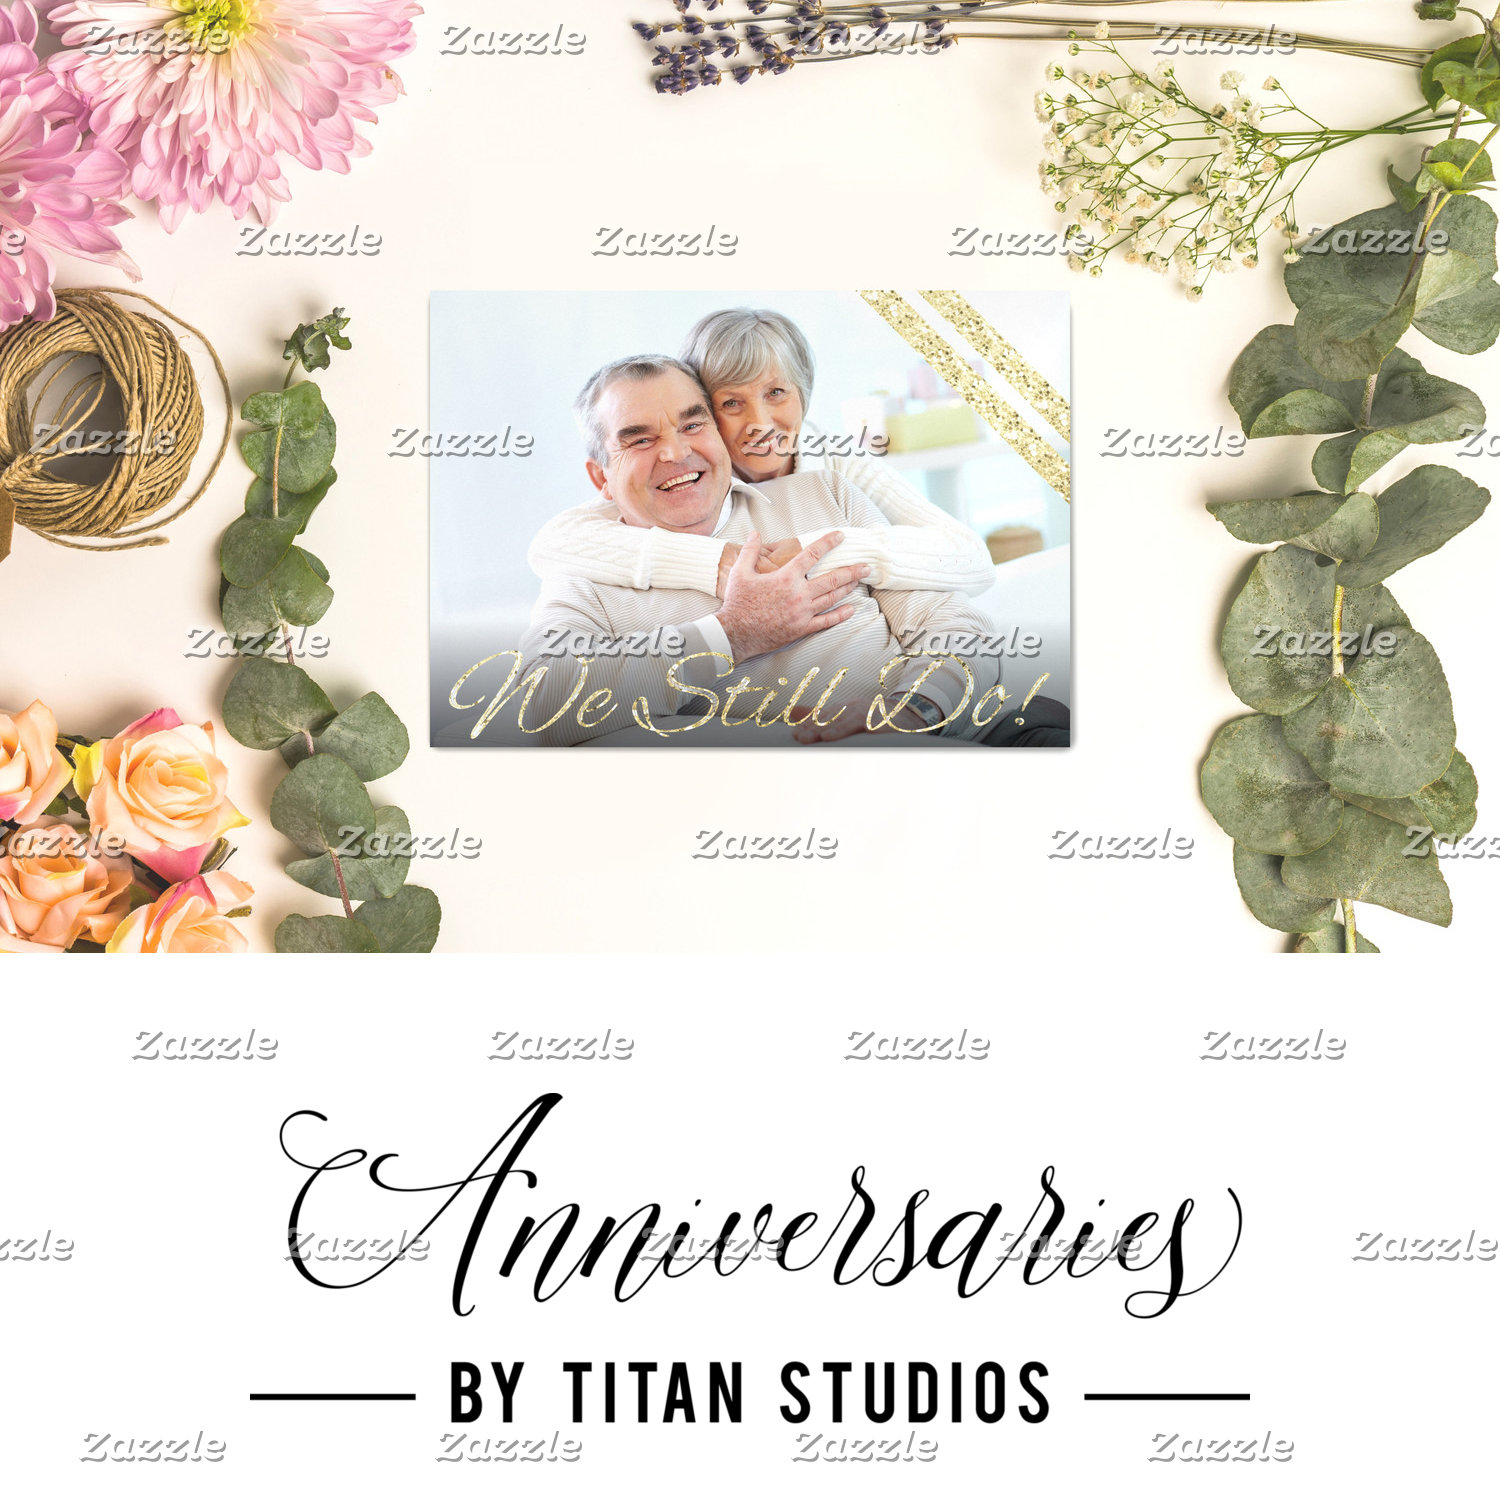 Anniversaries by Titan Studios